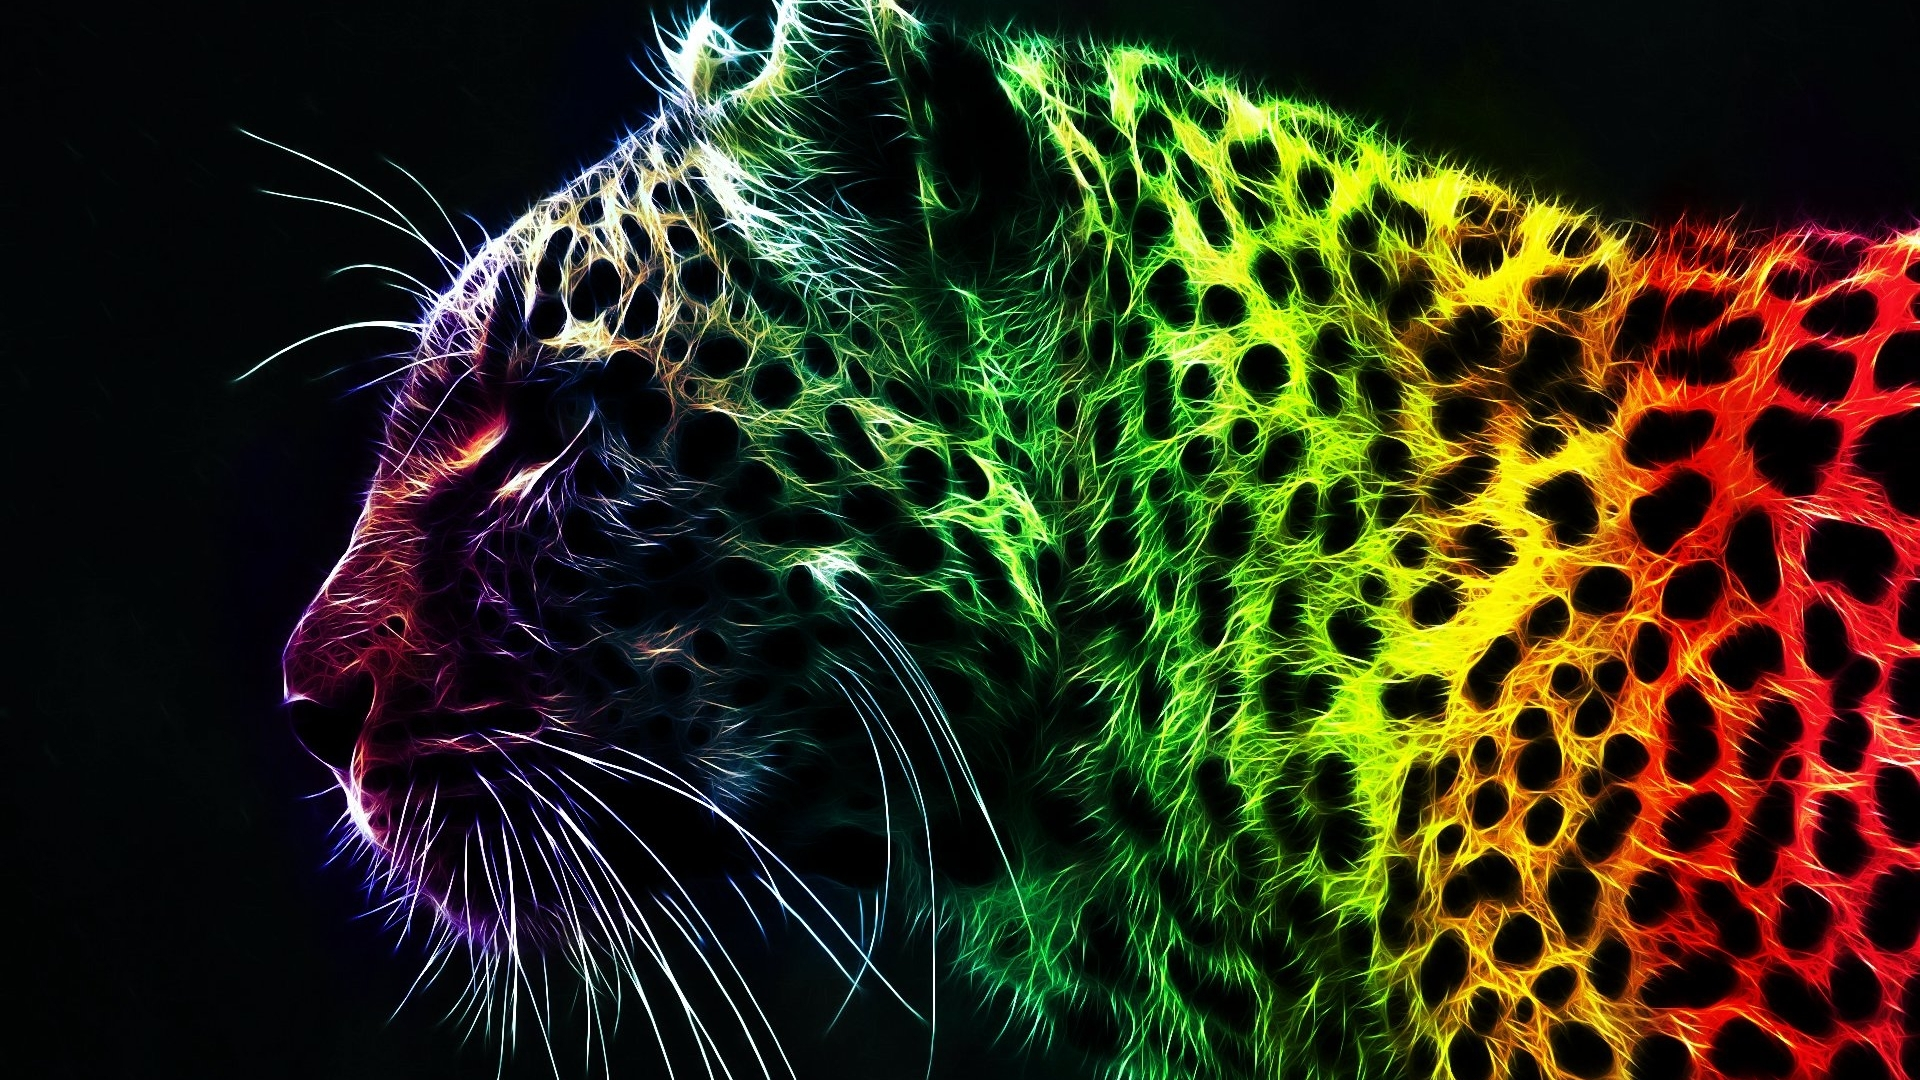 Download Animal Abstract Art Hd Wallpaper Full HD Wallpapers 1920x1080